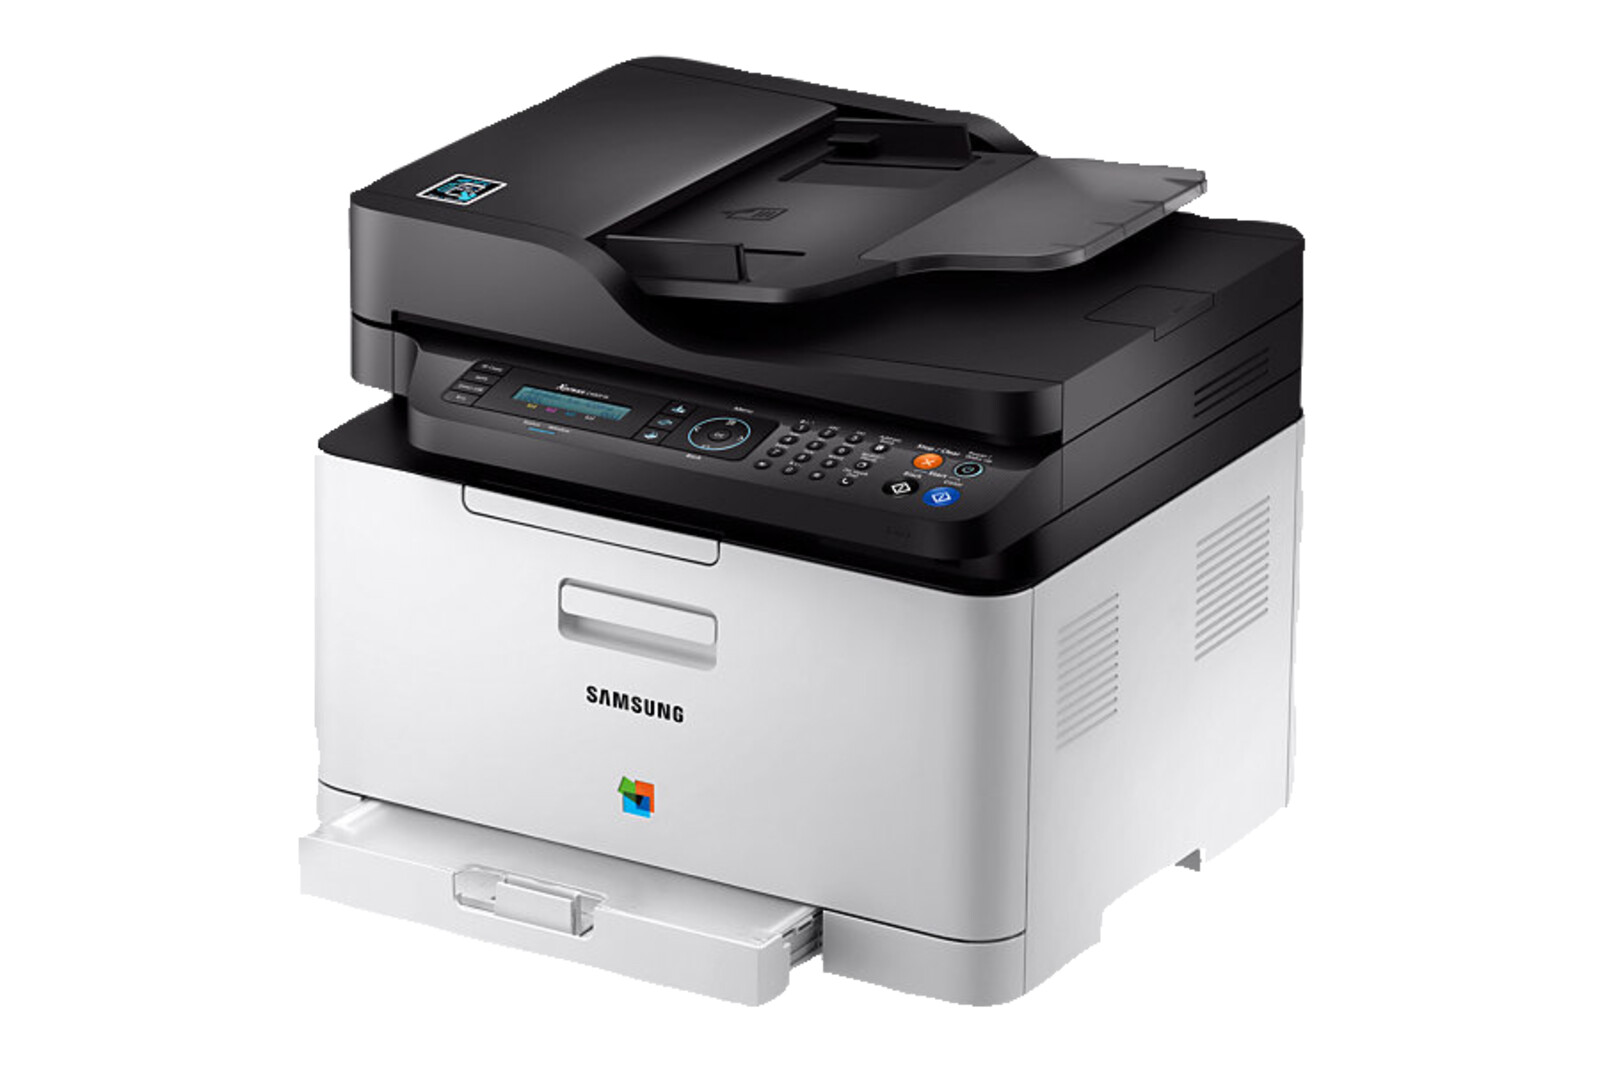 Samsung Multifunktionsdrucker Samsung Xpress C480fw 4 In 1 Laser Multifunktionsdrucker